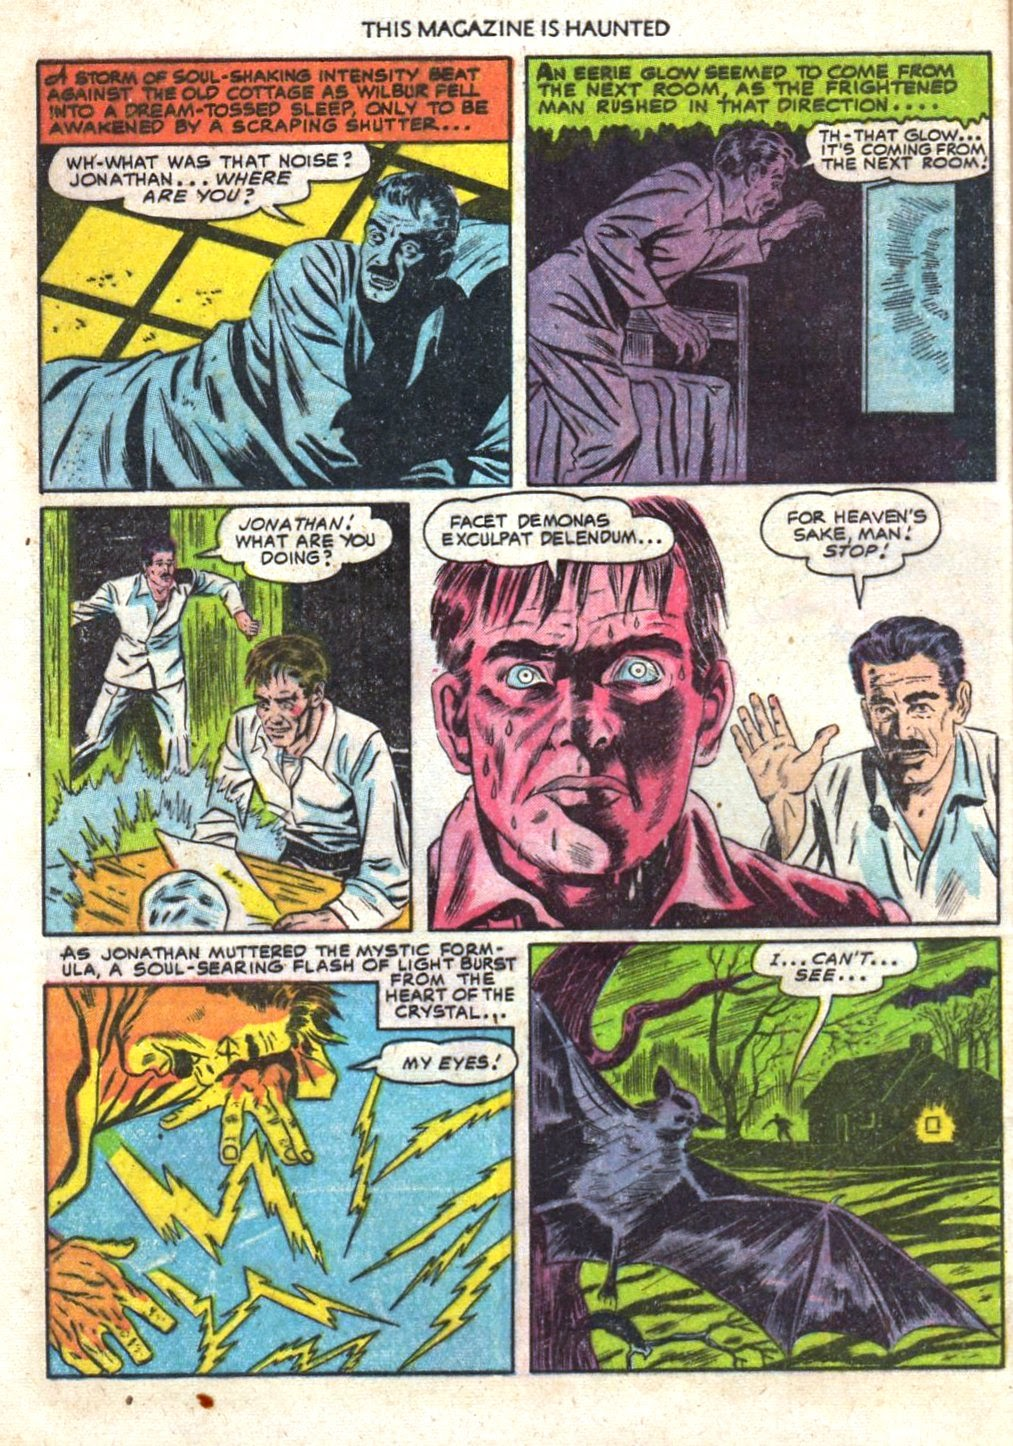 Read online This Magazine Is Haunted comic -  Issue #6 - 32